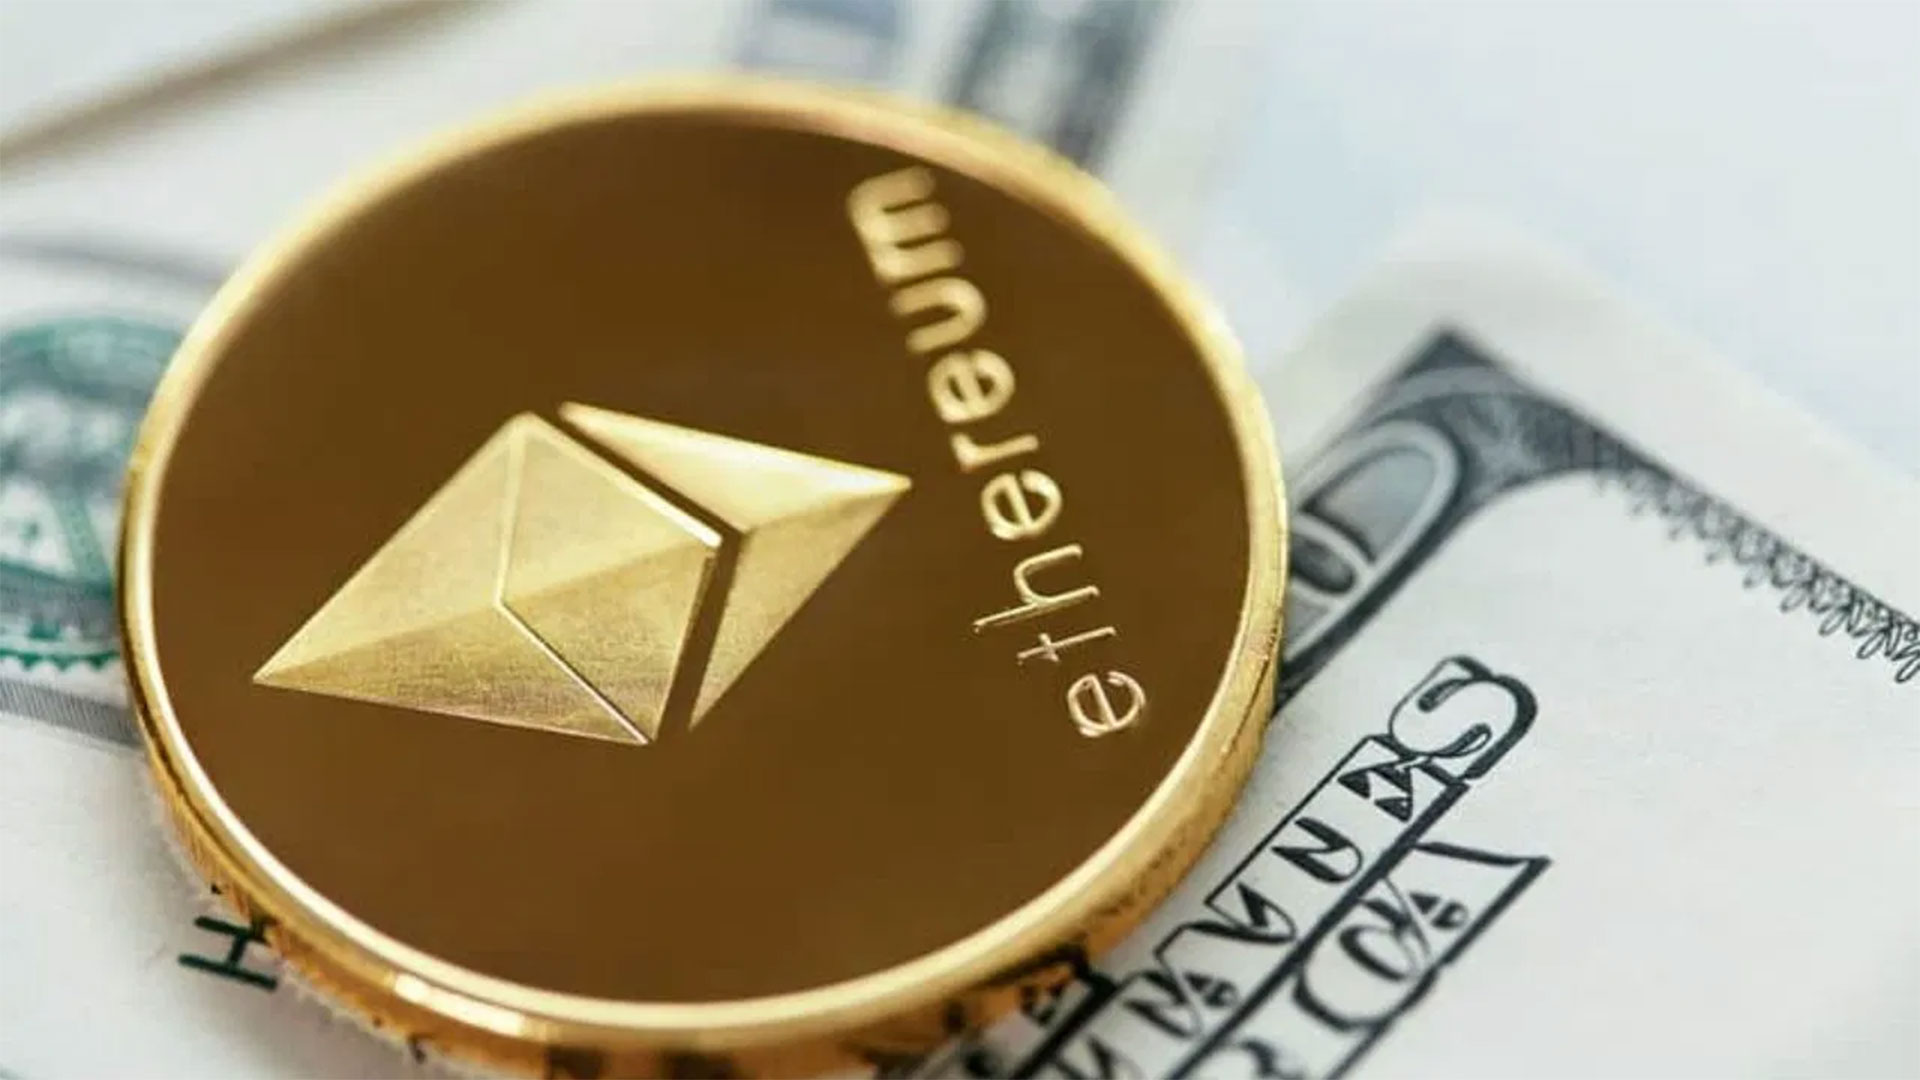 Ada was devised by one of the creators of Etherium and is a third generation crypto currency.